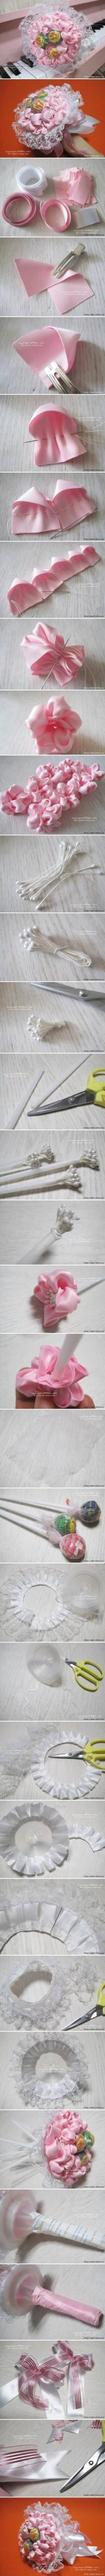 wedding photo - DIY Ribbon And Lace Candy Bouquet DIY Projects